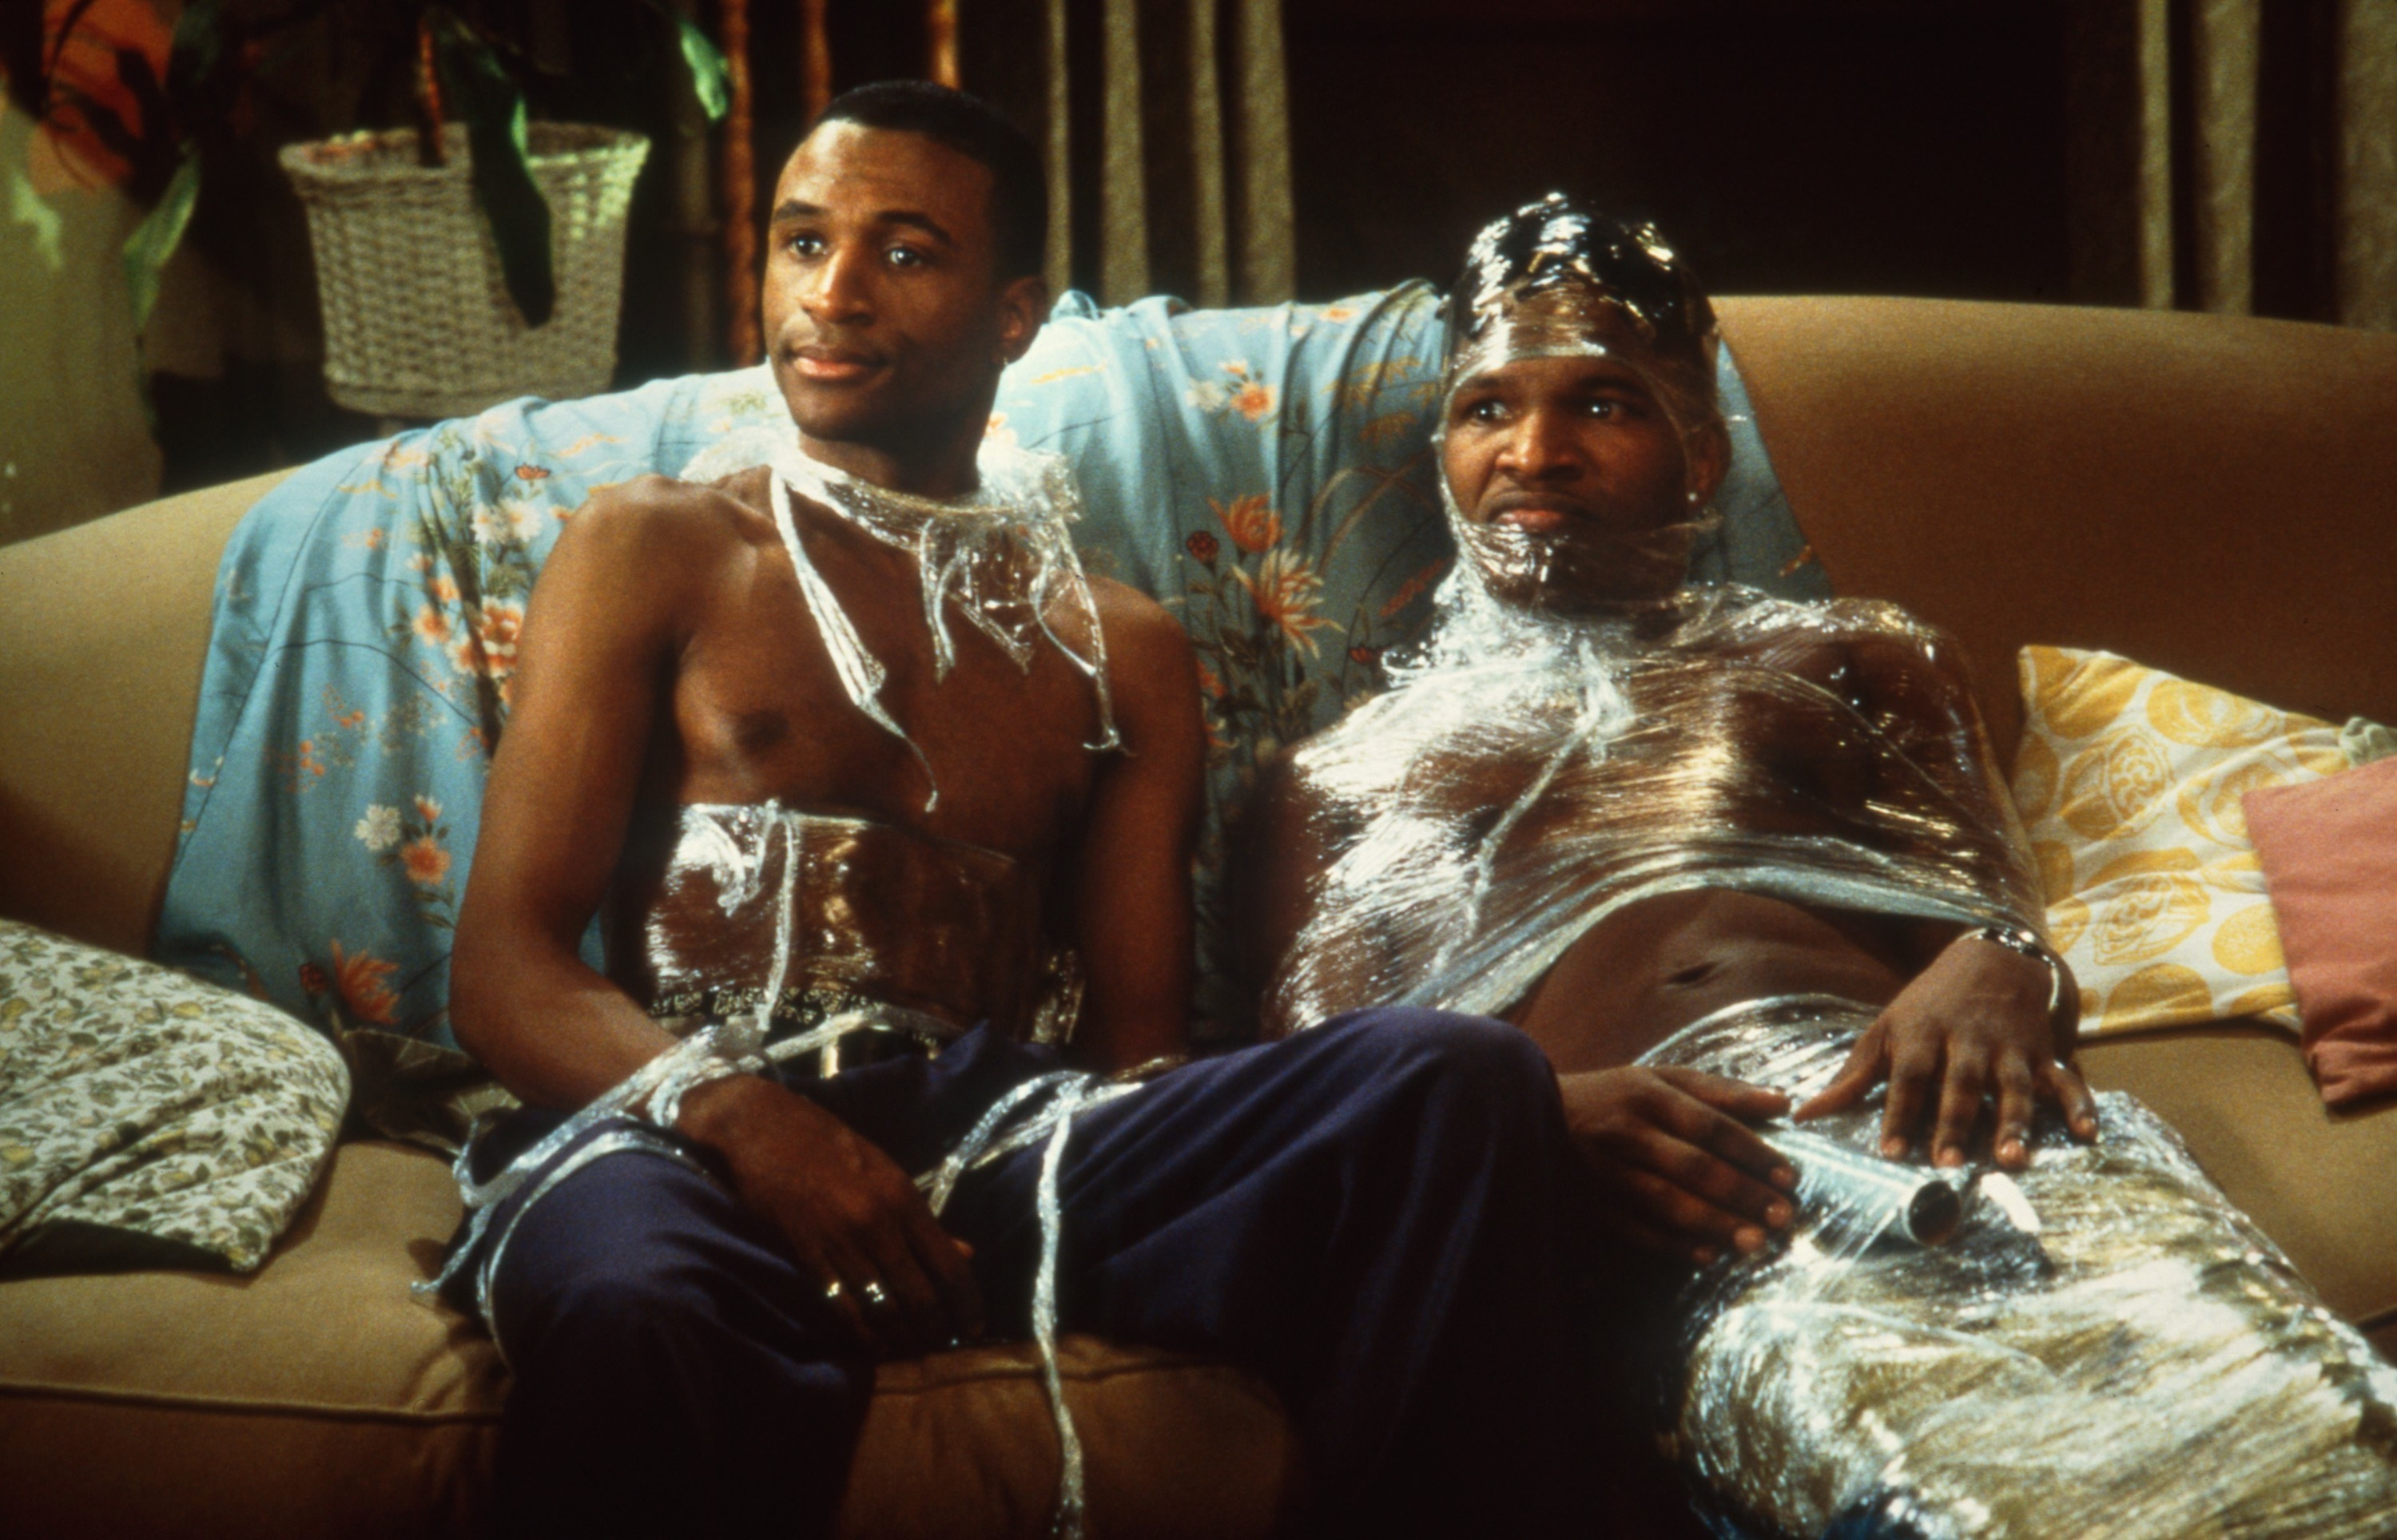 Jamie Foxx wrapped in kitchen plastic wrap on the couch